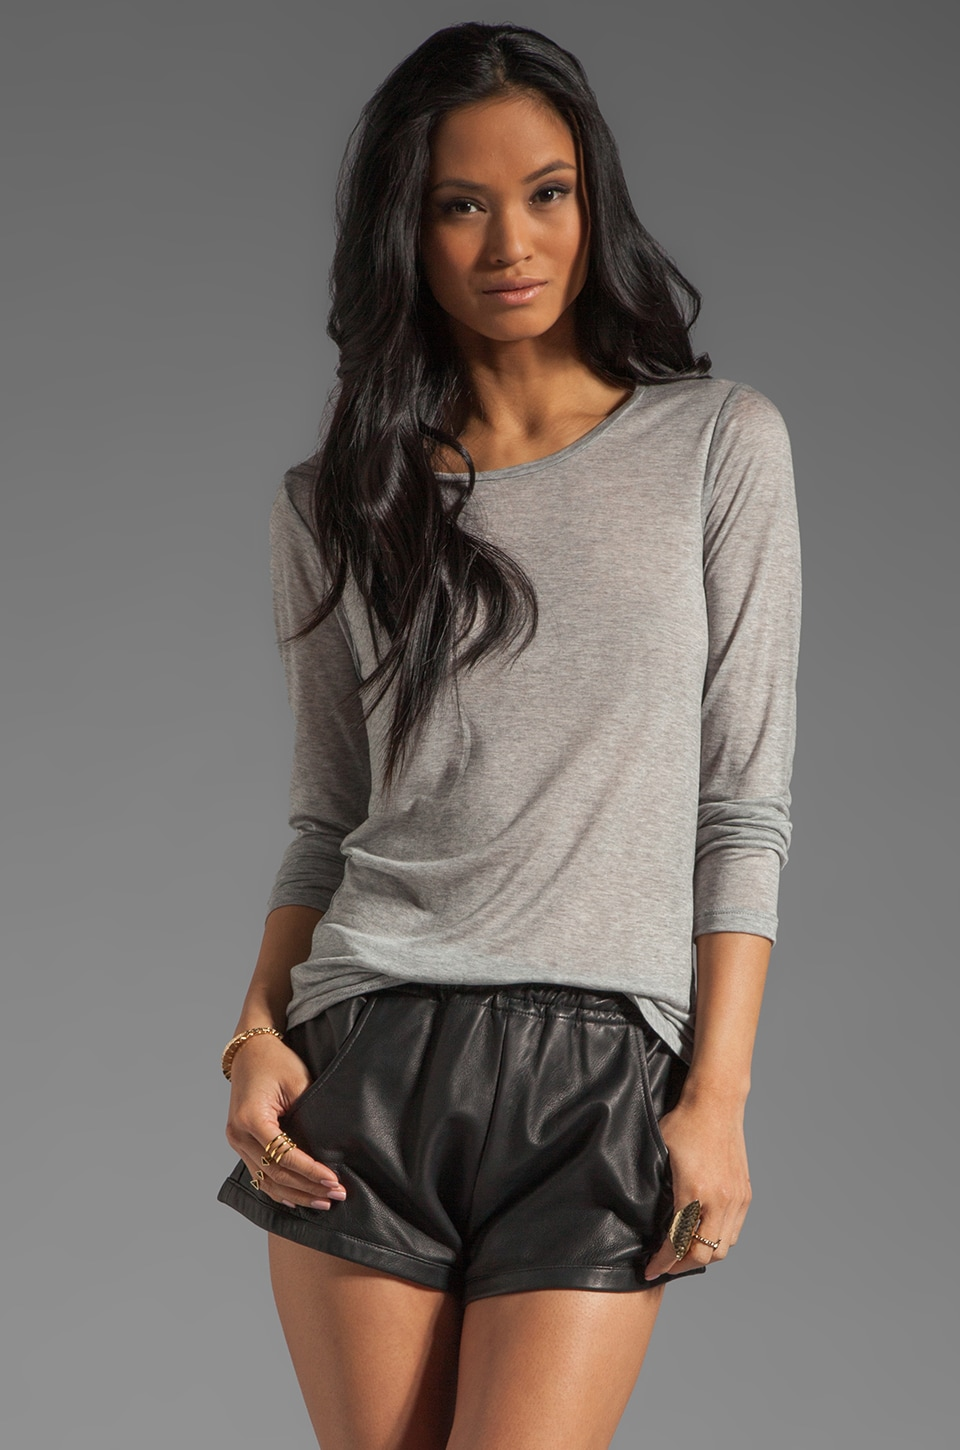 Velvet by Graham & Spencer Luxe Heather Chica Long Sleeve Tee in Heather Grey